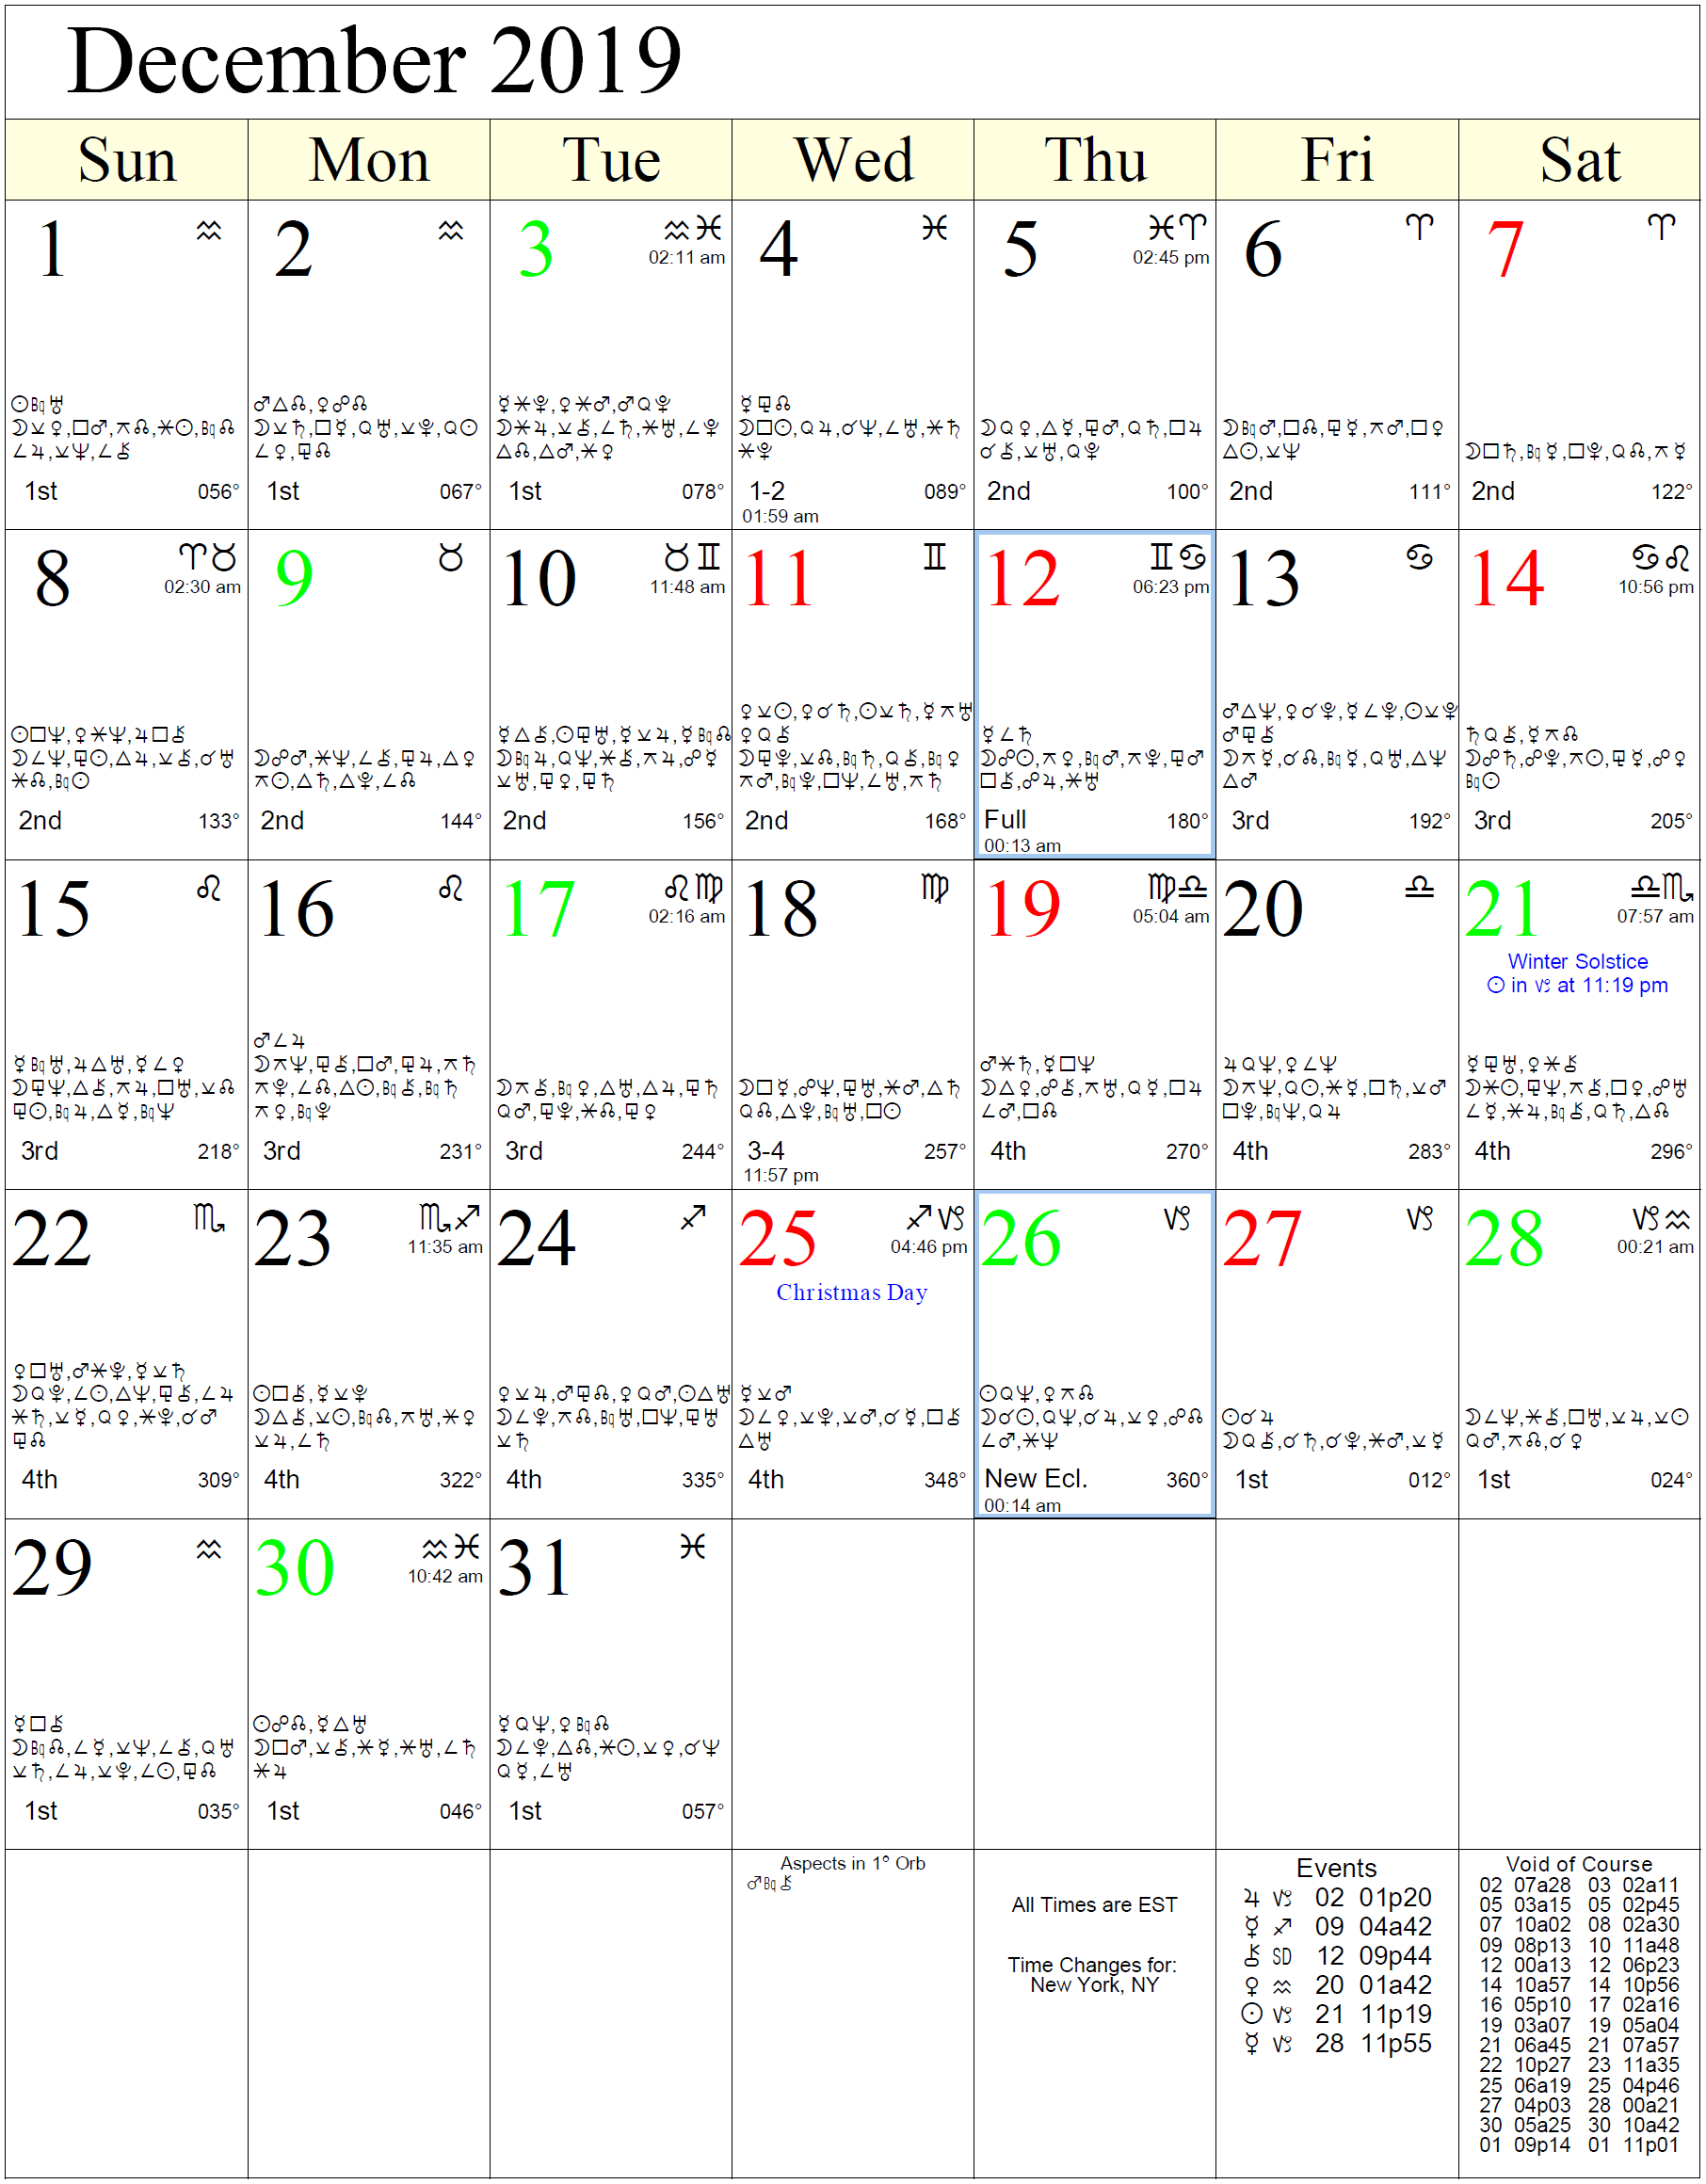 What does Mercury in retrograde mean